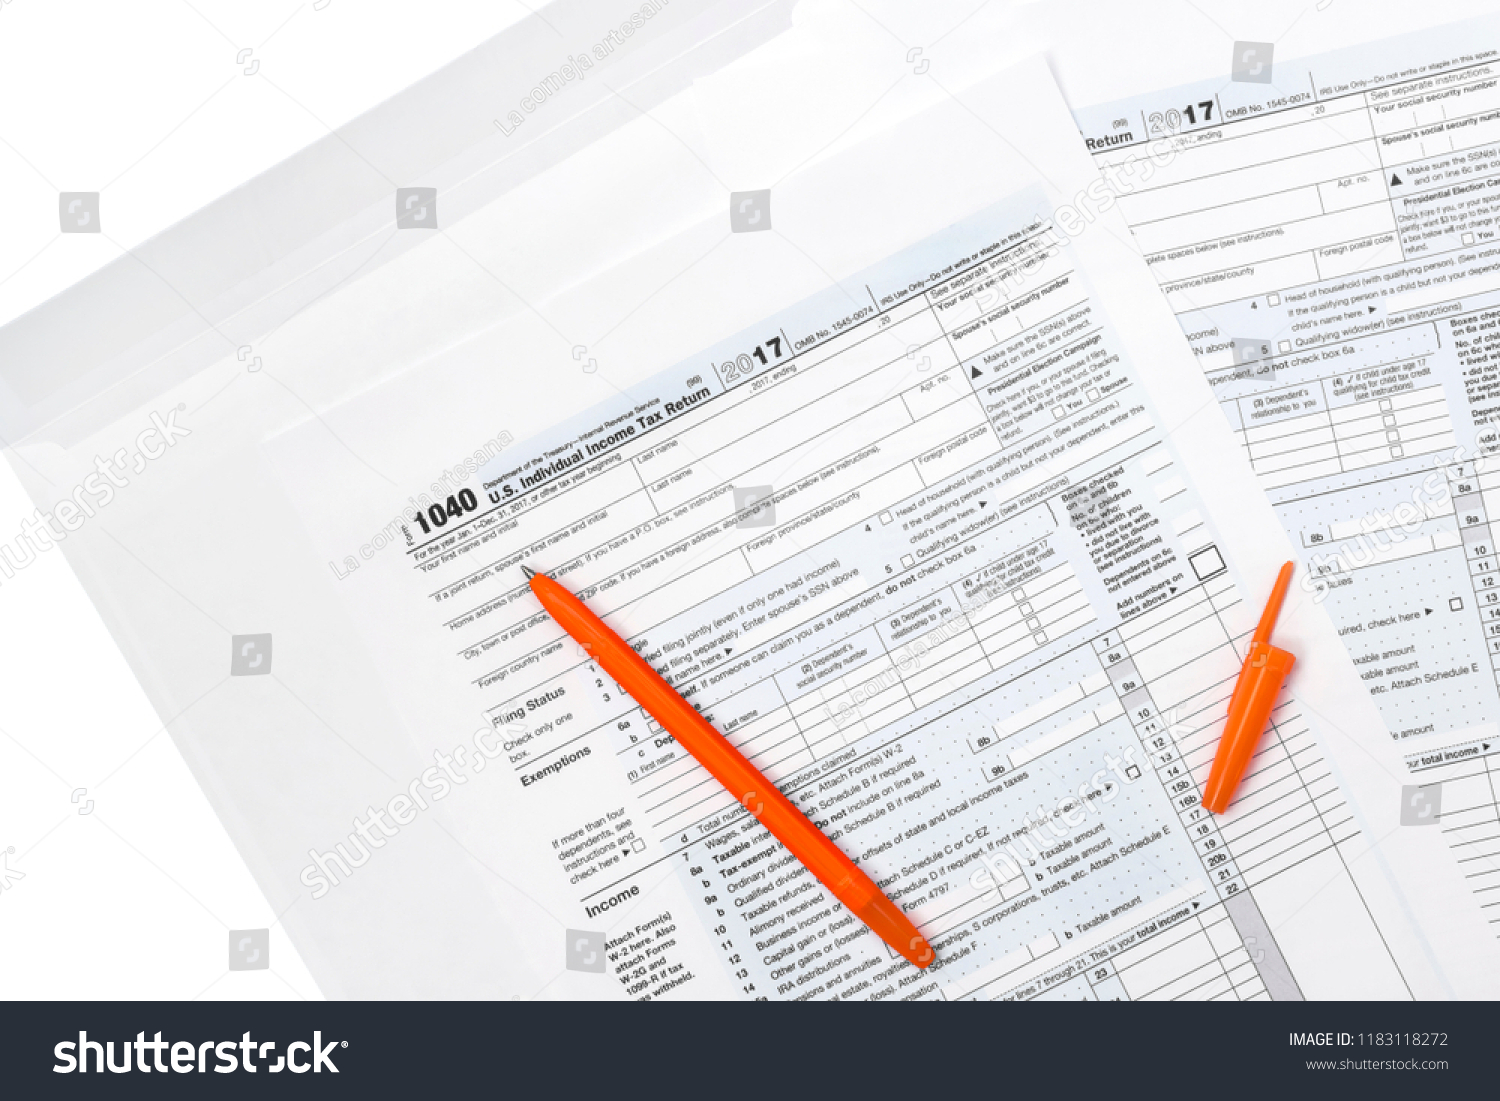 Overhead Photo Income Irs Tax Form Stock Photo (Edit Now) 1183118272